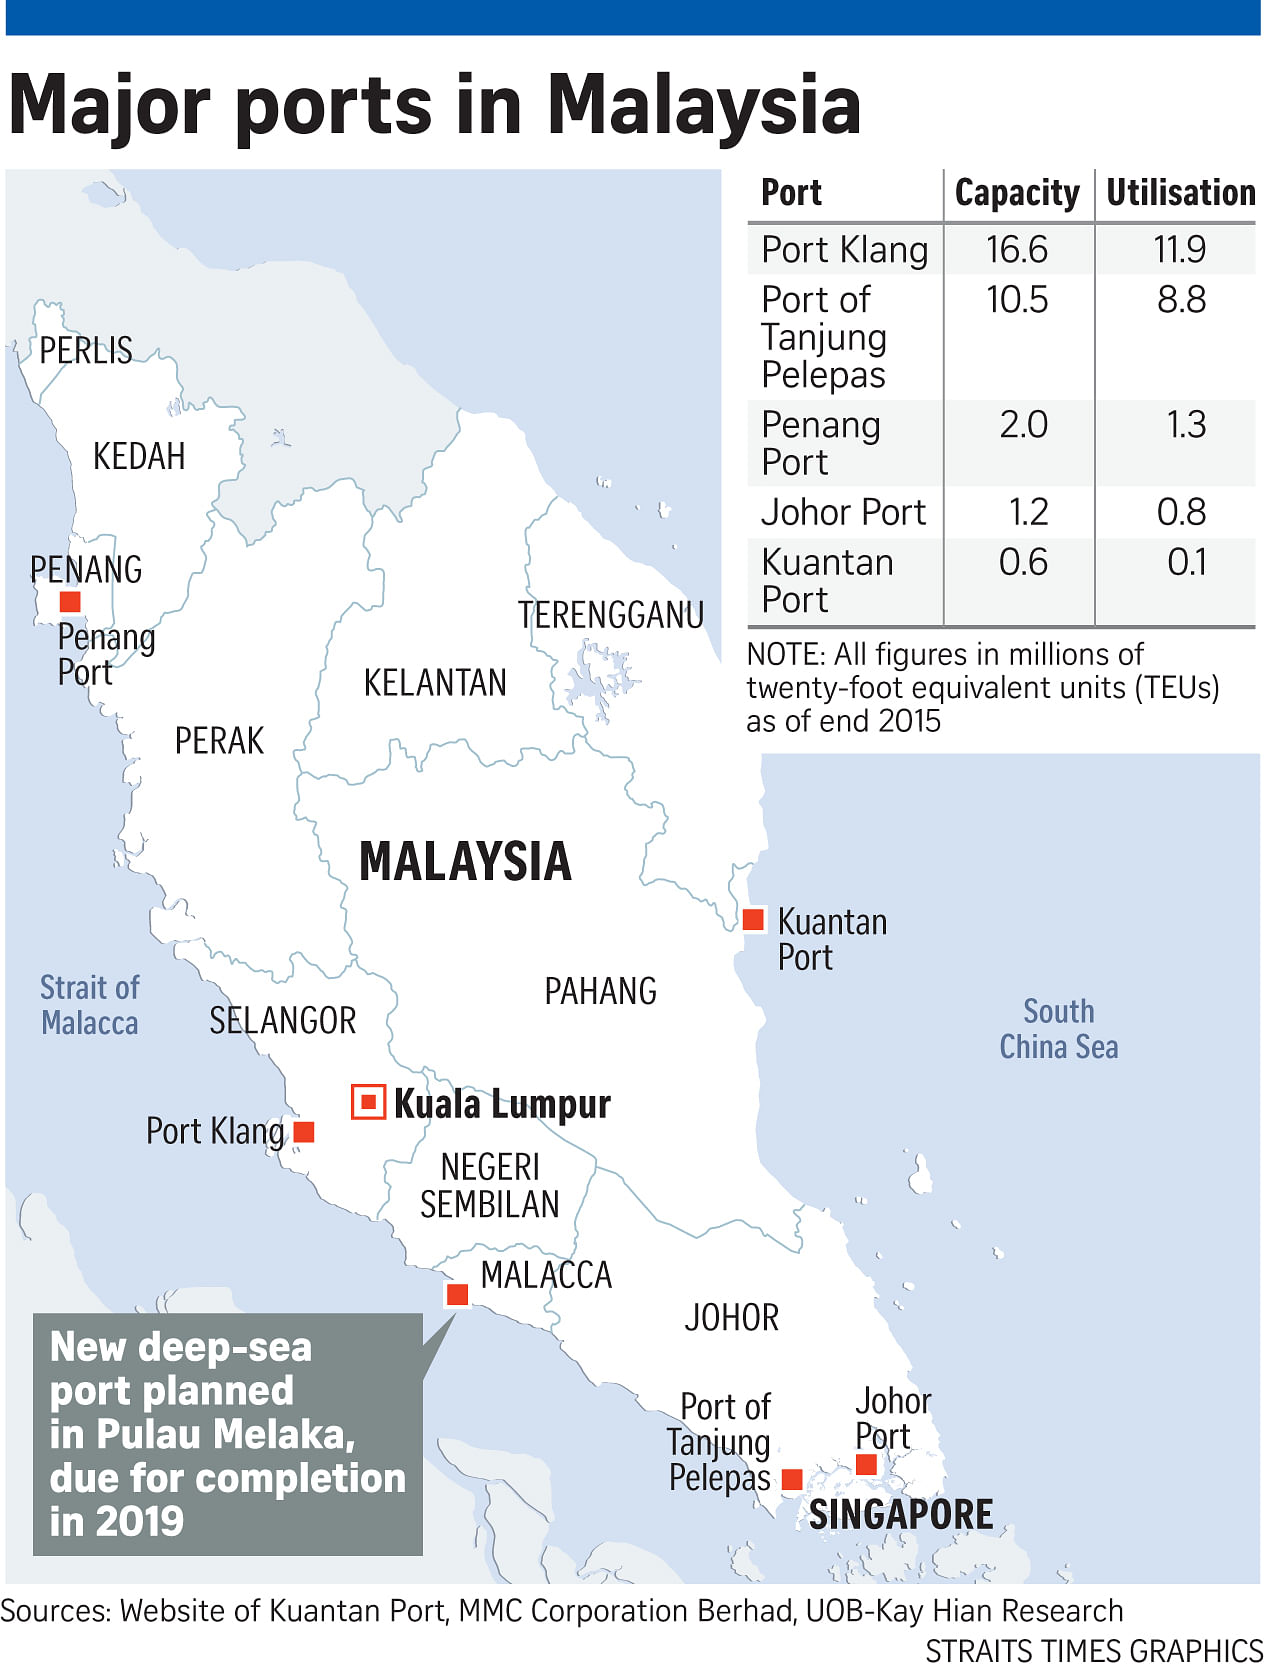 Malacca harbour plan raises questions about chinas strategic aims malacca harbour plan raises questions about chinas strategic aims gumiabroncs Choice Image